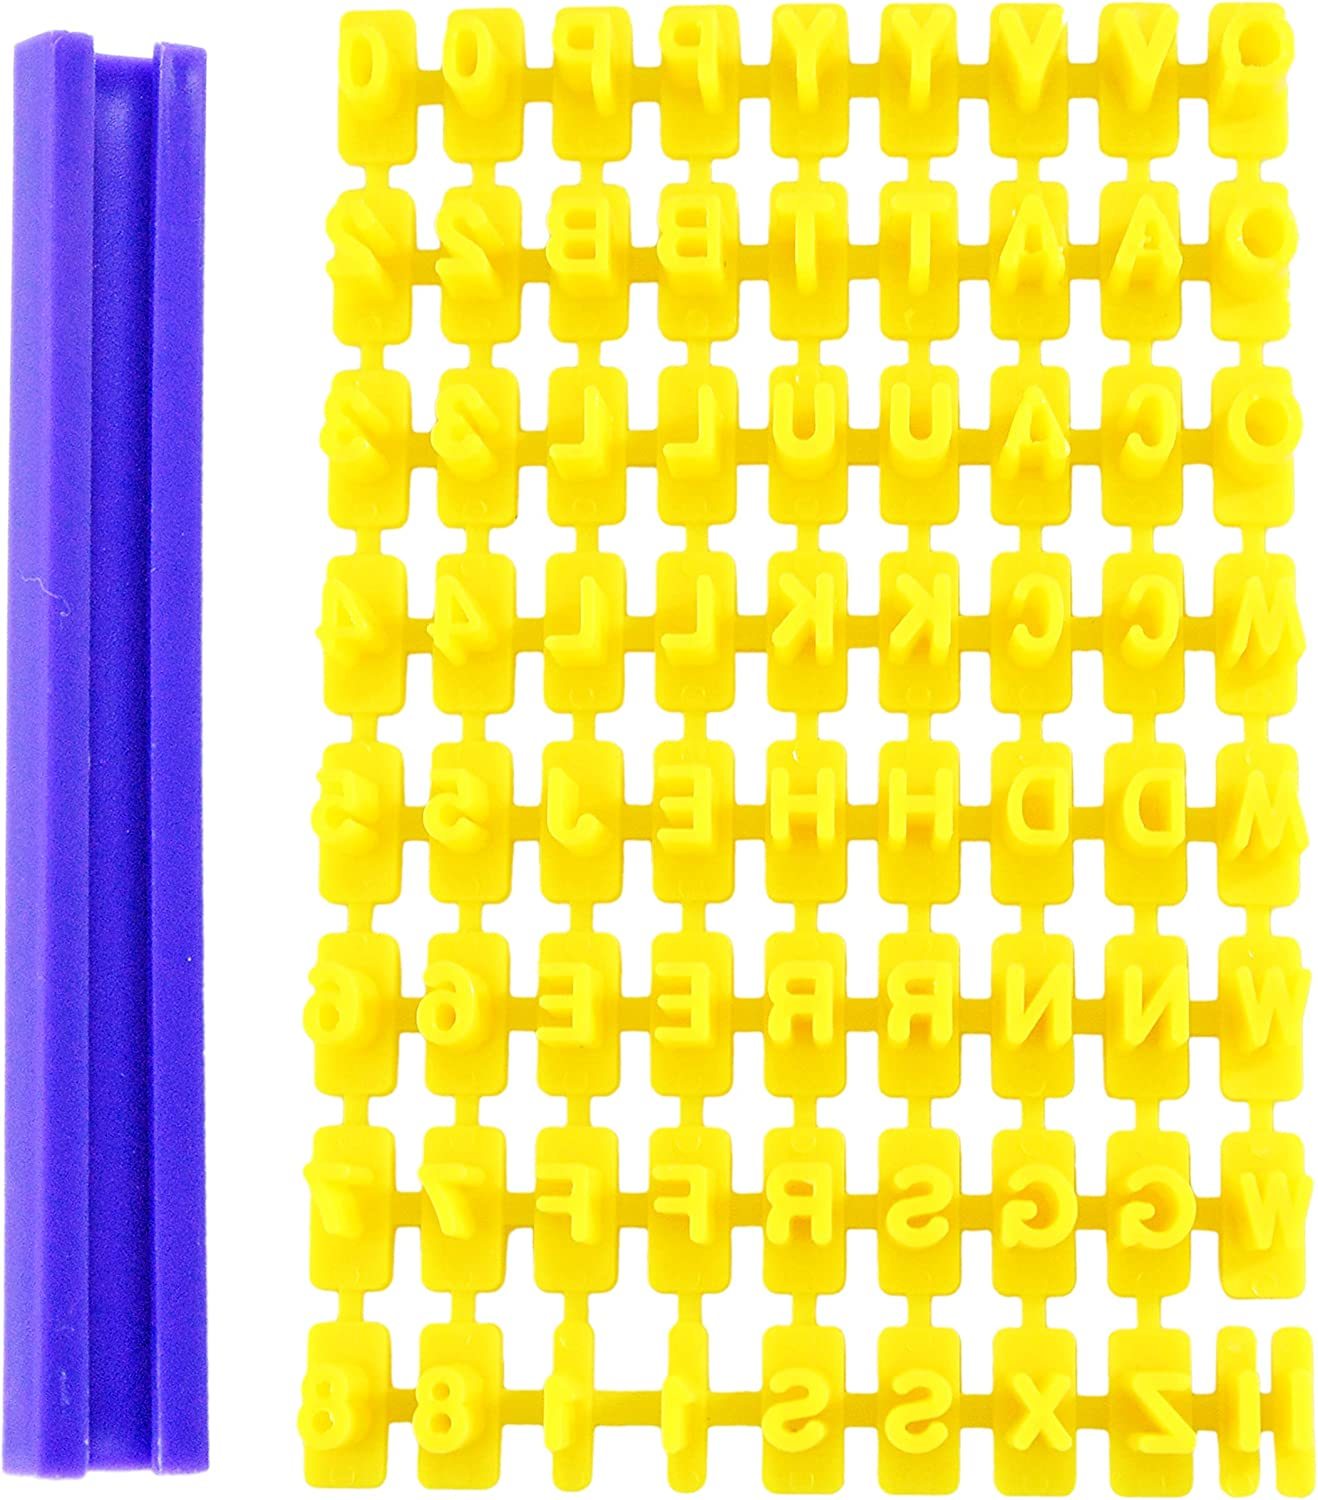 "HOME-X Cookie Stamp, Letter and Number Stamps for Decorating Cookies, Cake, and Fondant, Baking Tool- Yellow and Purple- Each ¼"" L"